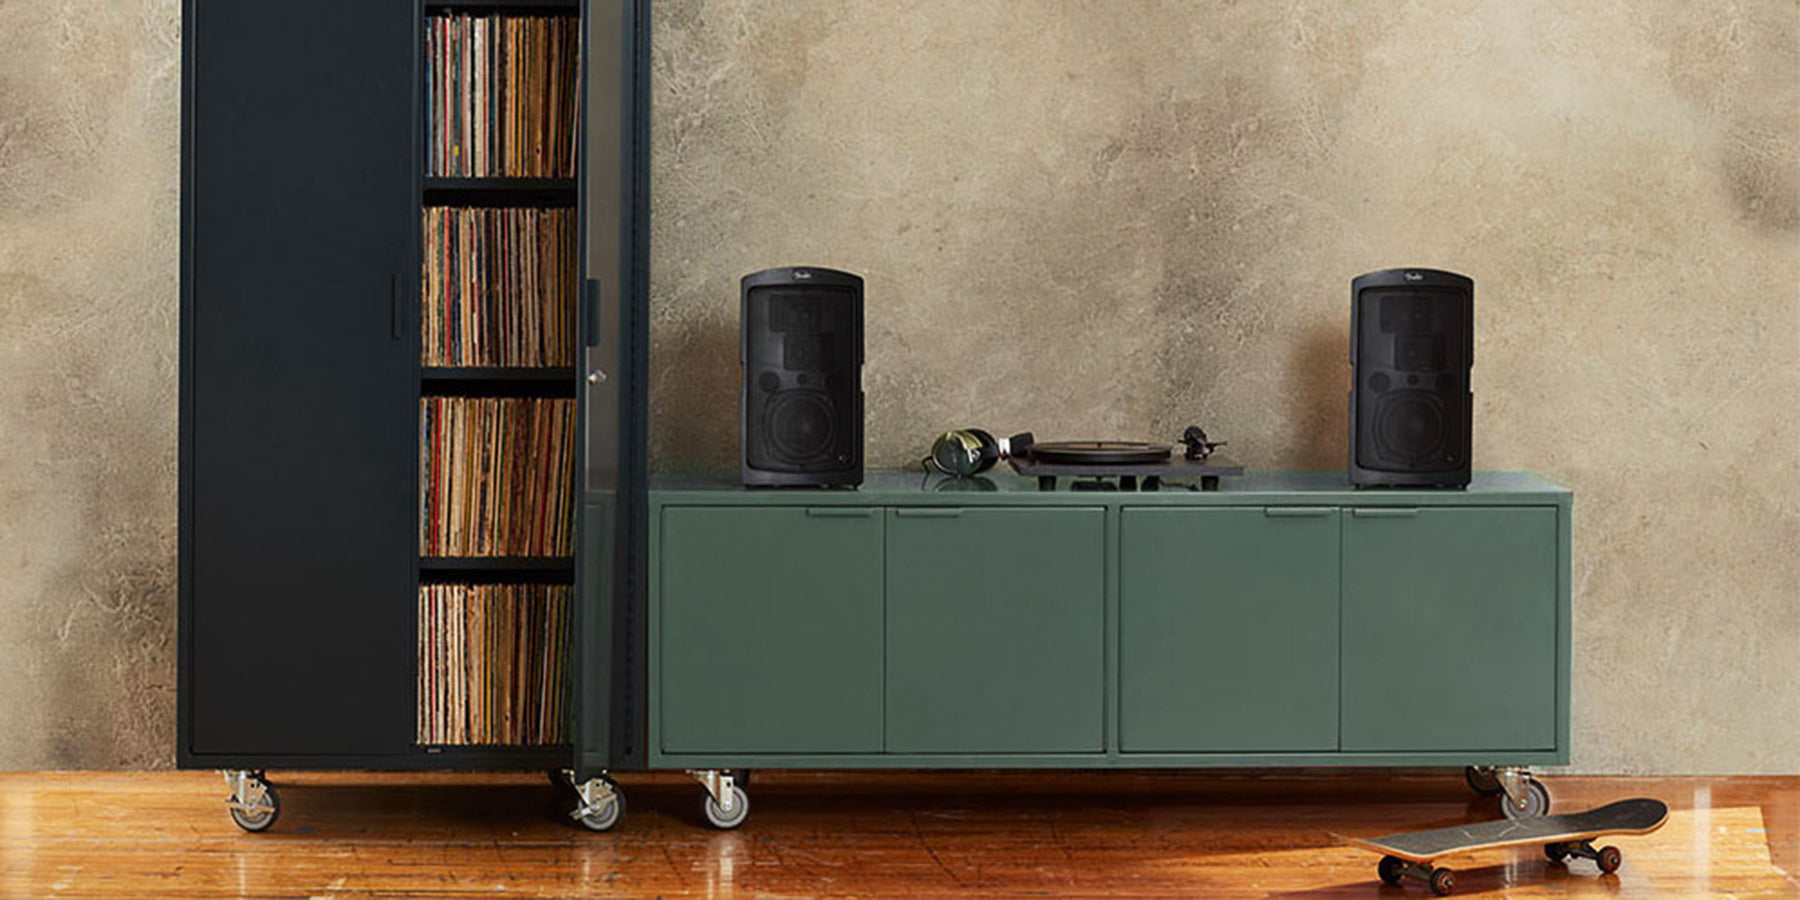 Heartwork Active Duty A/V credenza in deep green with record player and speakers in home setting